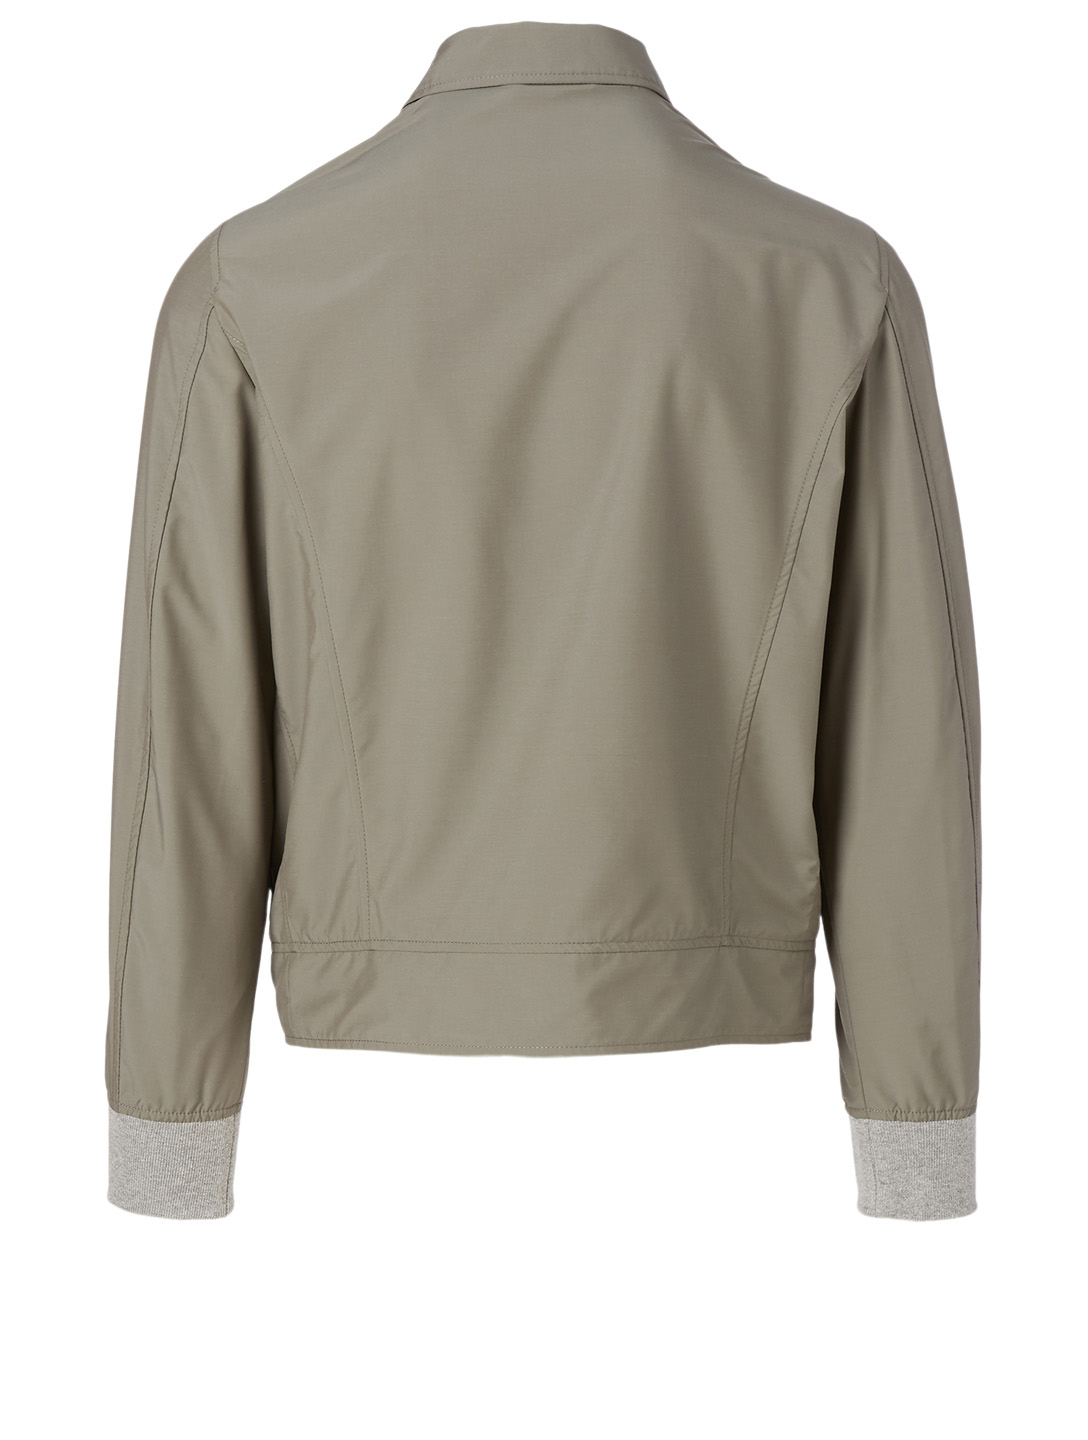 ELEVENTY Wool-Blend Bomber Jacket Men's Green